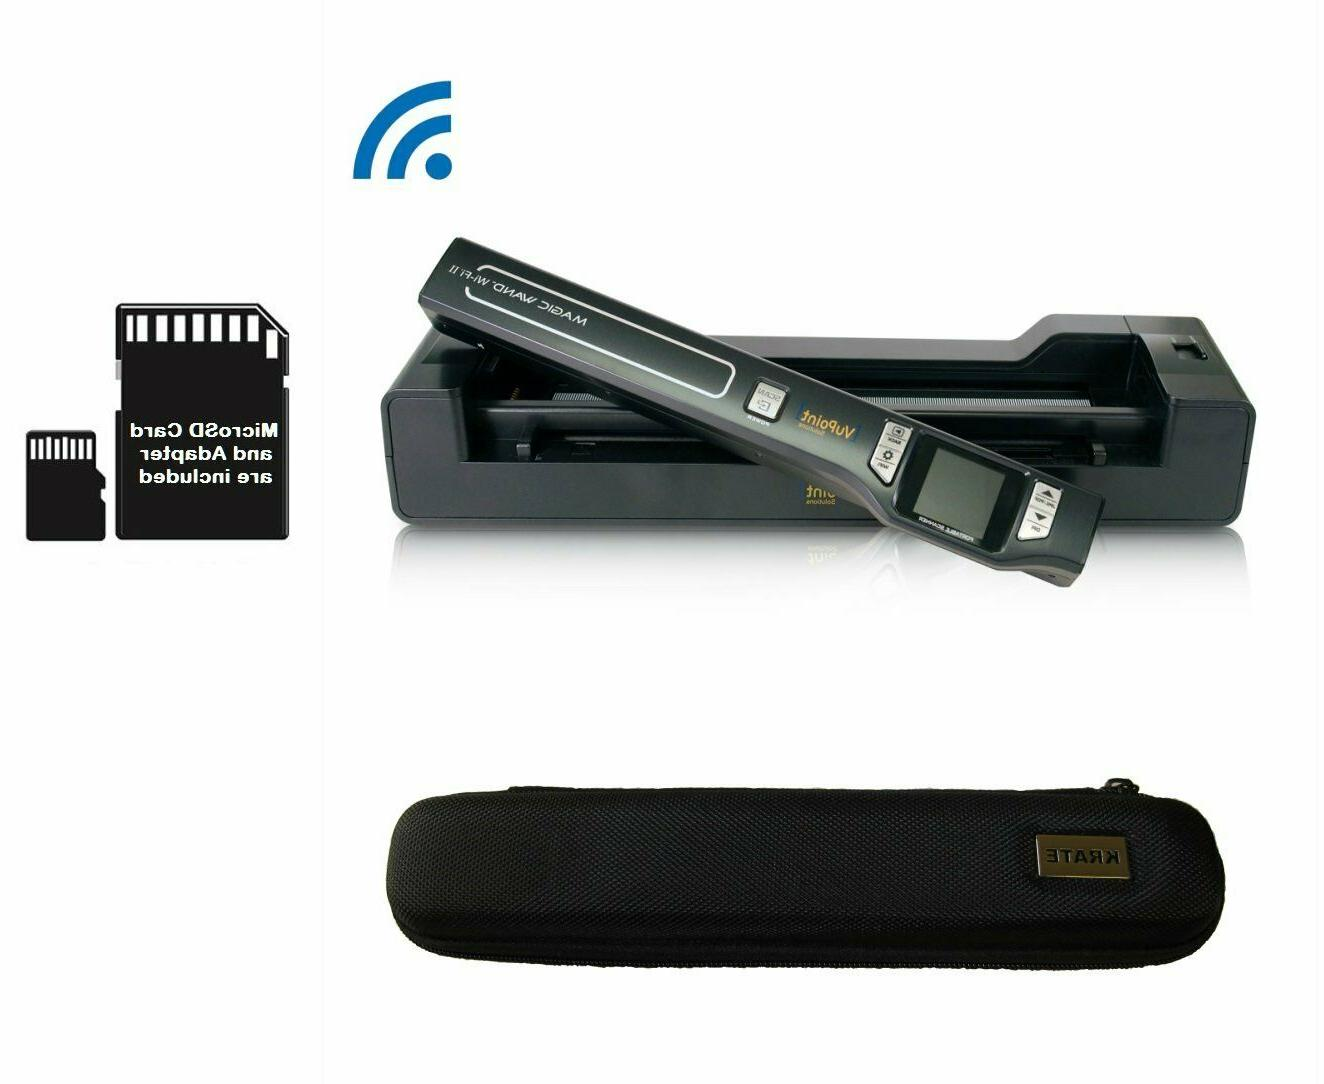 st47 magic wand portable scanner auto feed